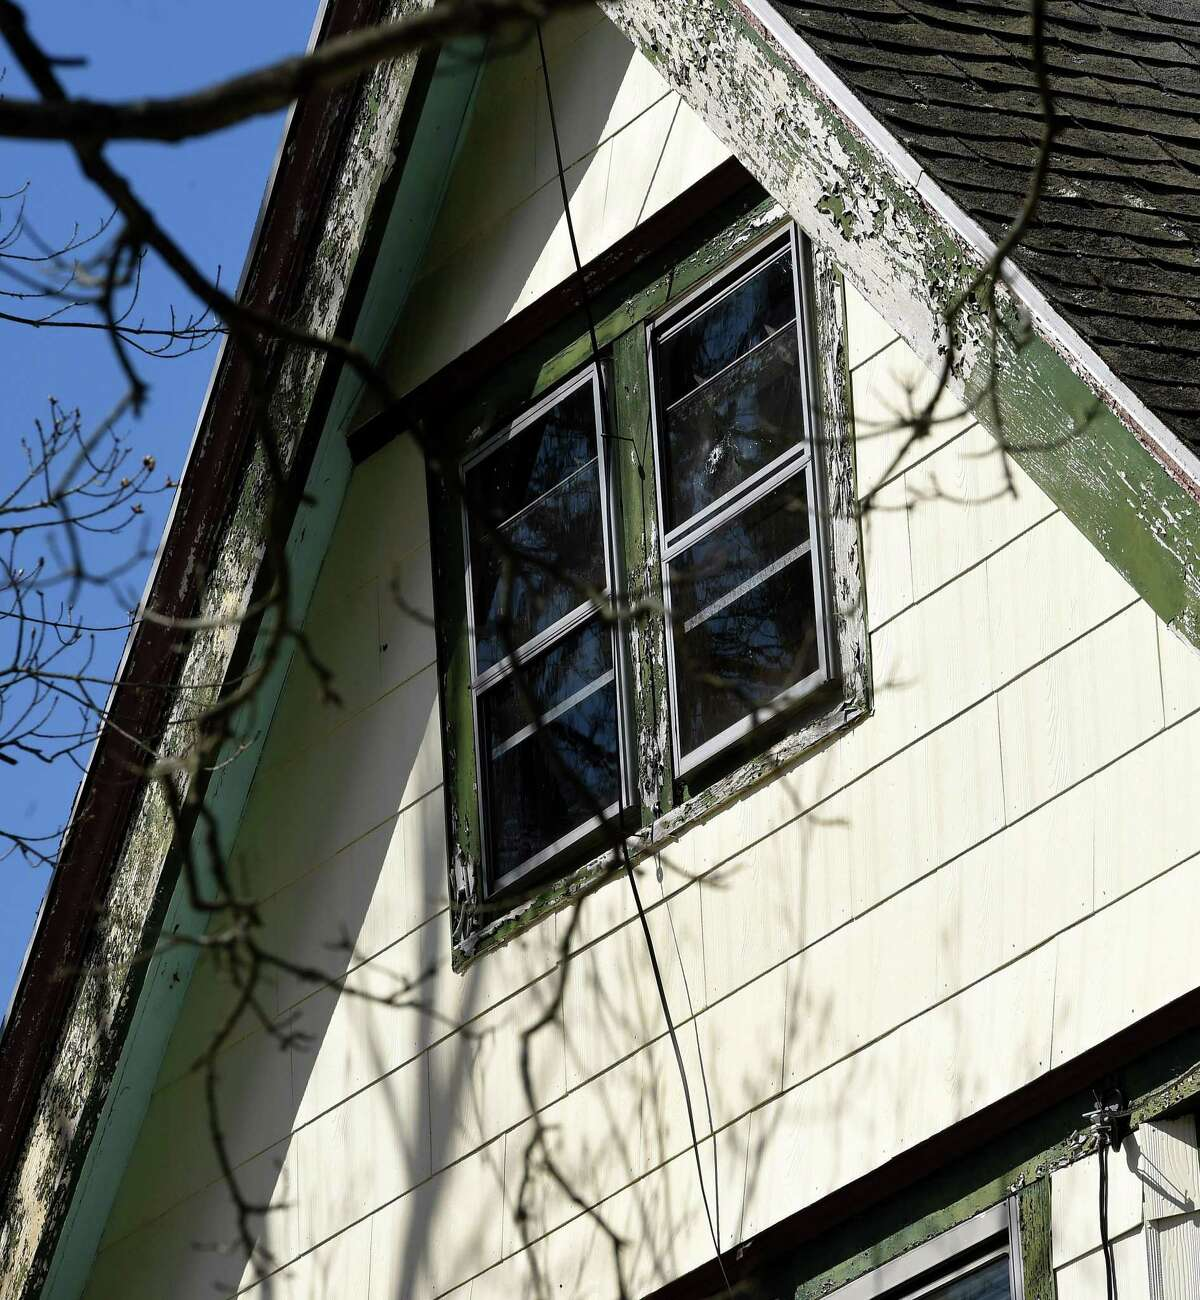 A bullet hole can be seen in the attic window of a house next door to where a shooter fired from a second-floor apartment 241 Main Street in Branford the previous day.